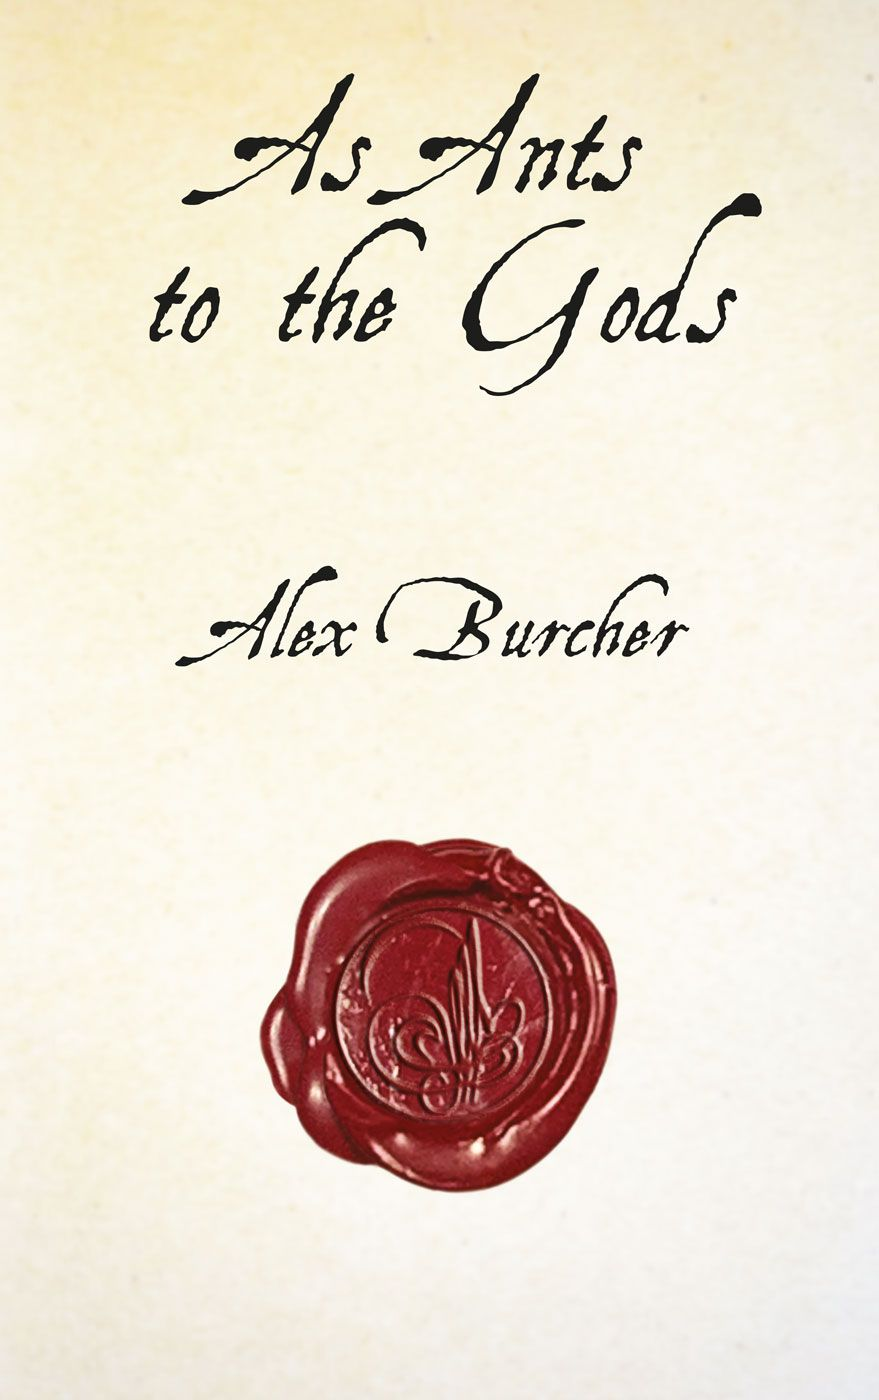 As Ants to the Gods; Cover design: Alison Buck